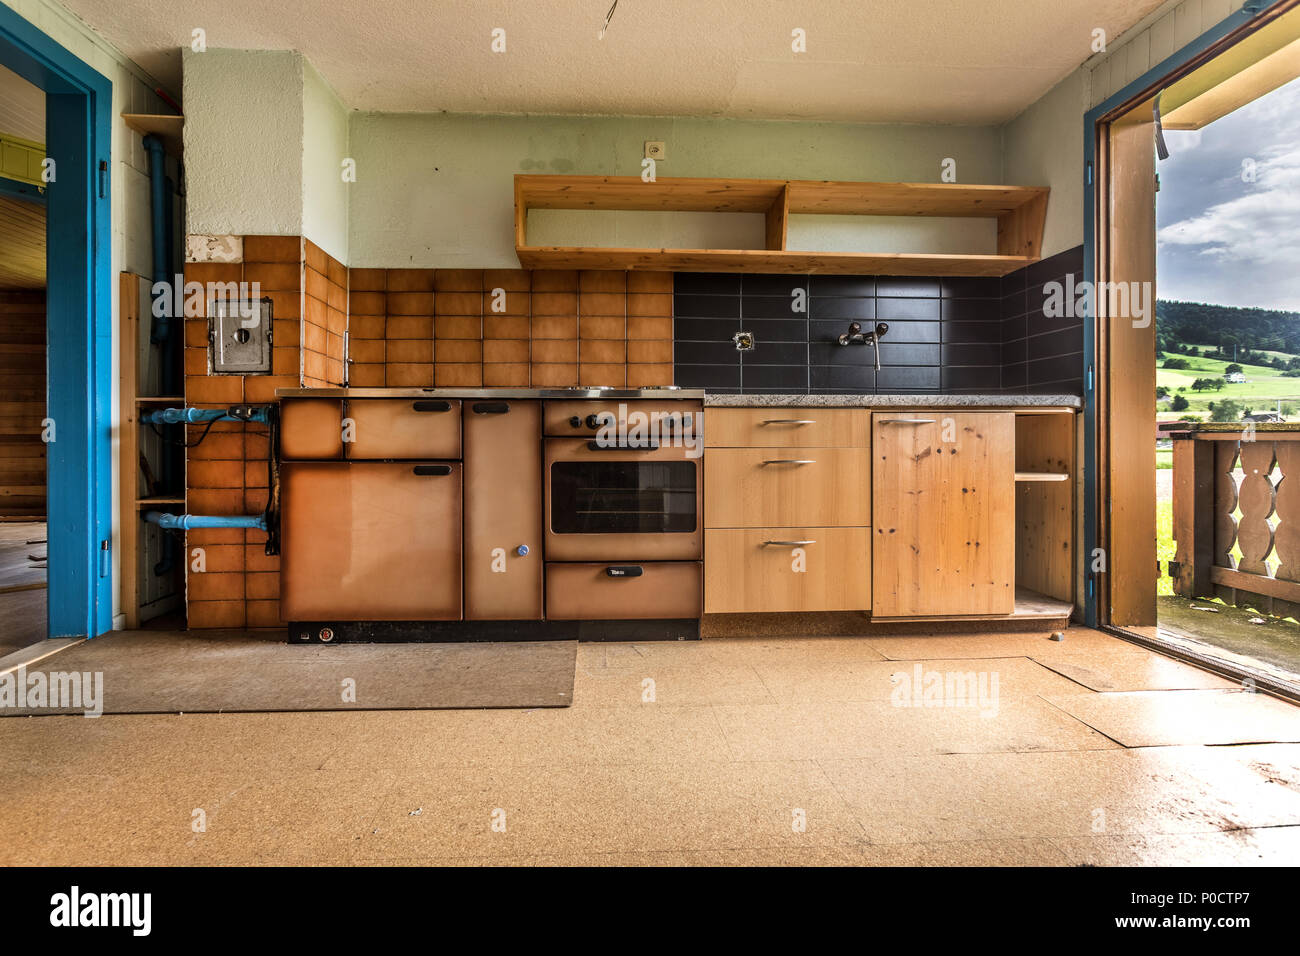 Old kitchen in a house that is demolished - Stock Image